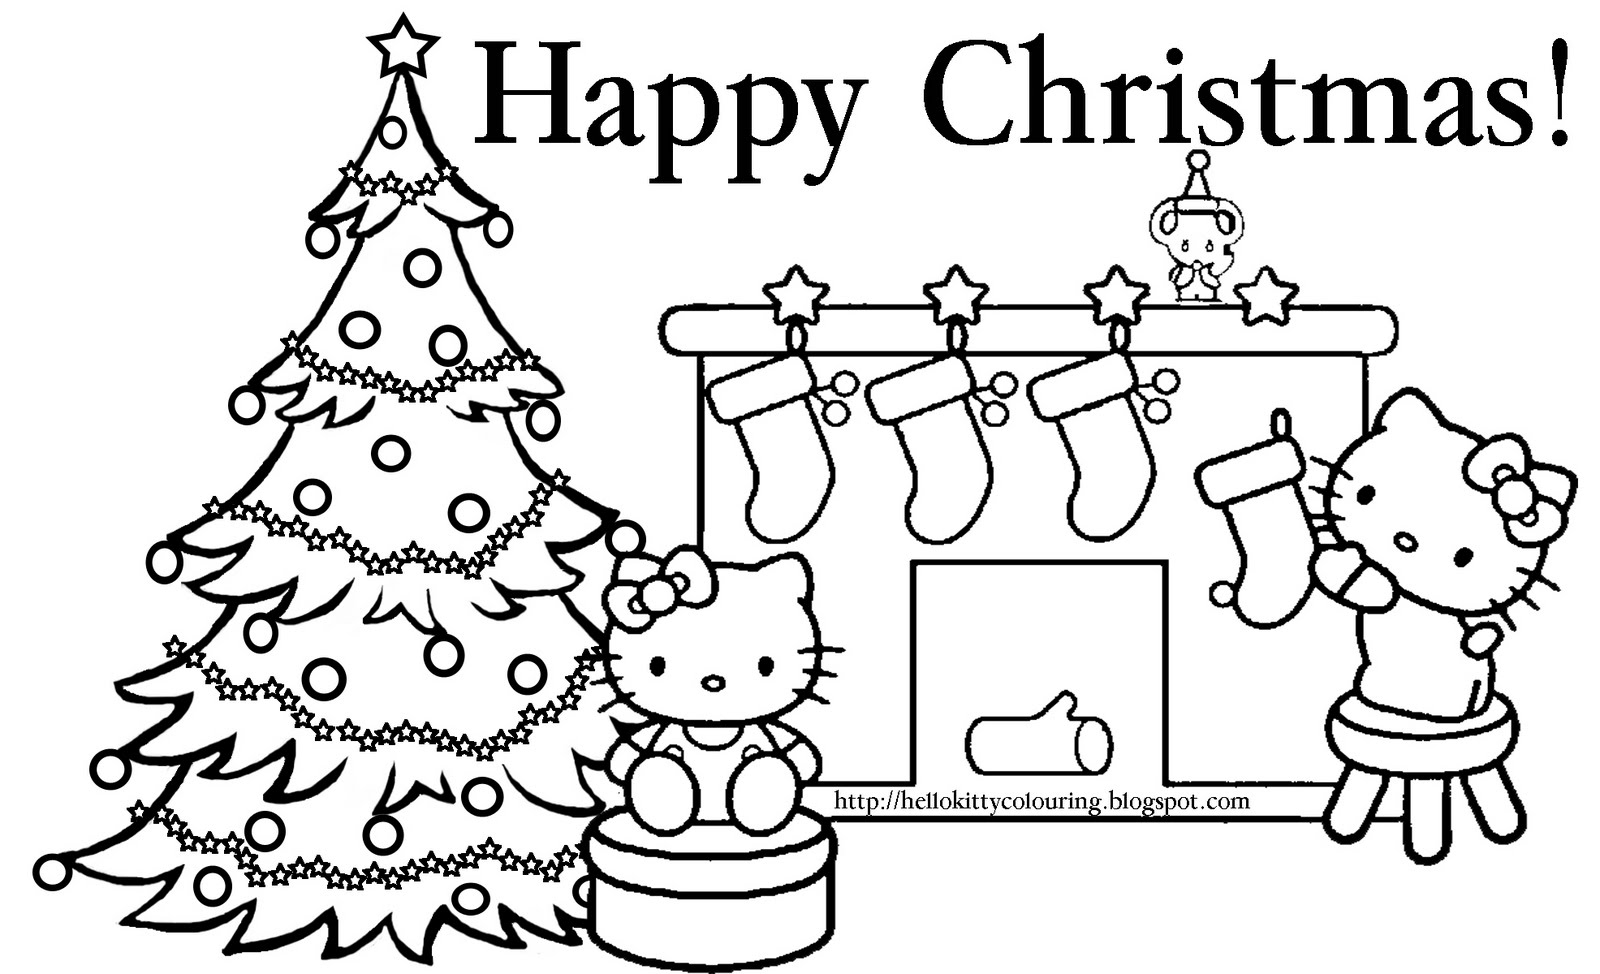 merry christmas coloring pages print - Printable Christmas Coloring Pages Parents